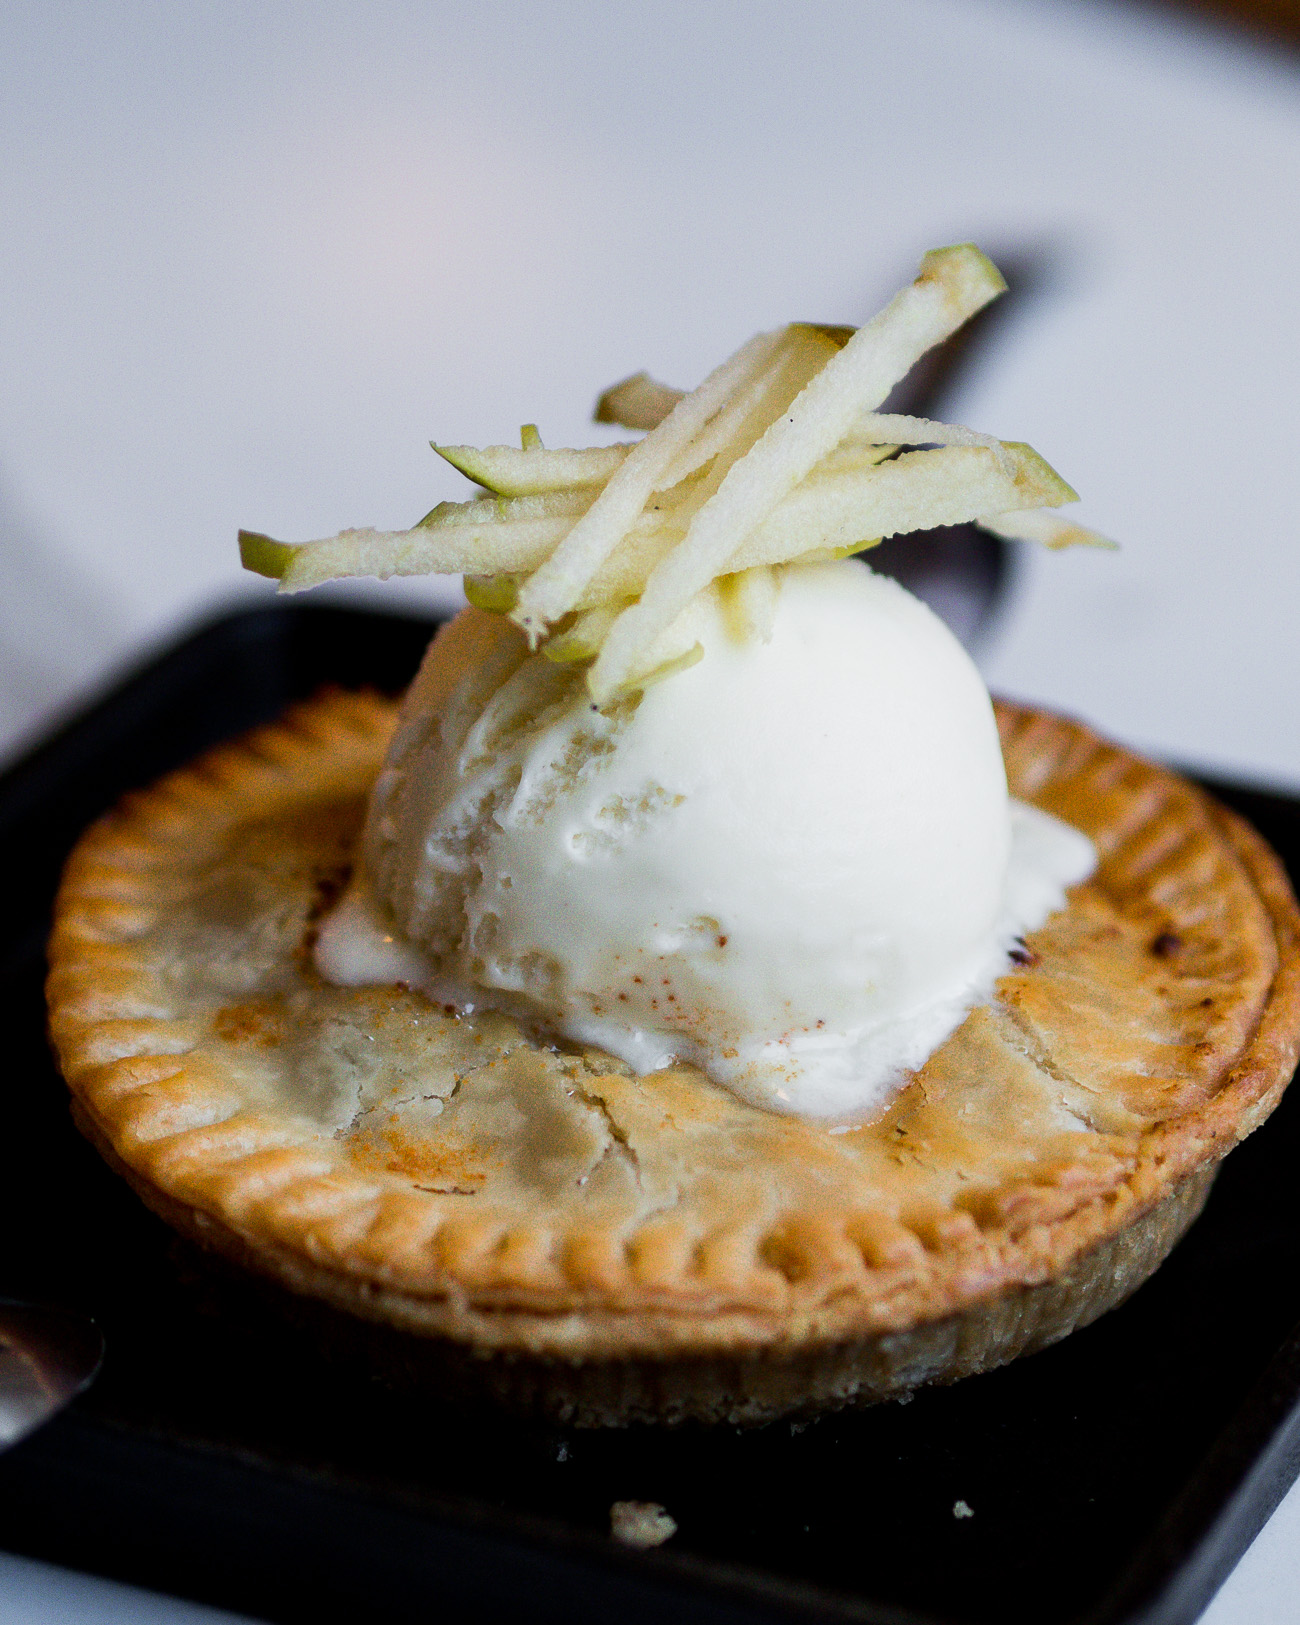 Freshly baked mini apple pie from The commoner Restaurant